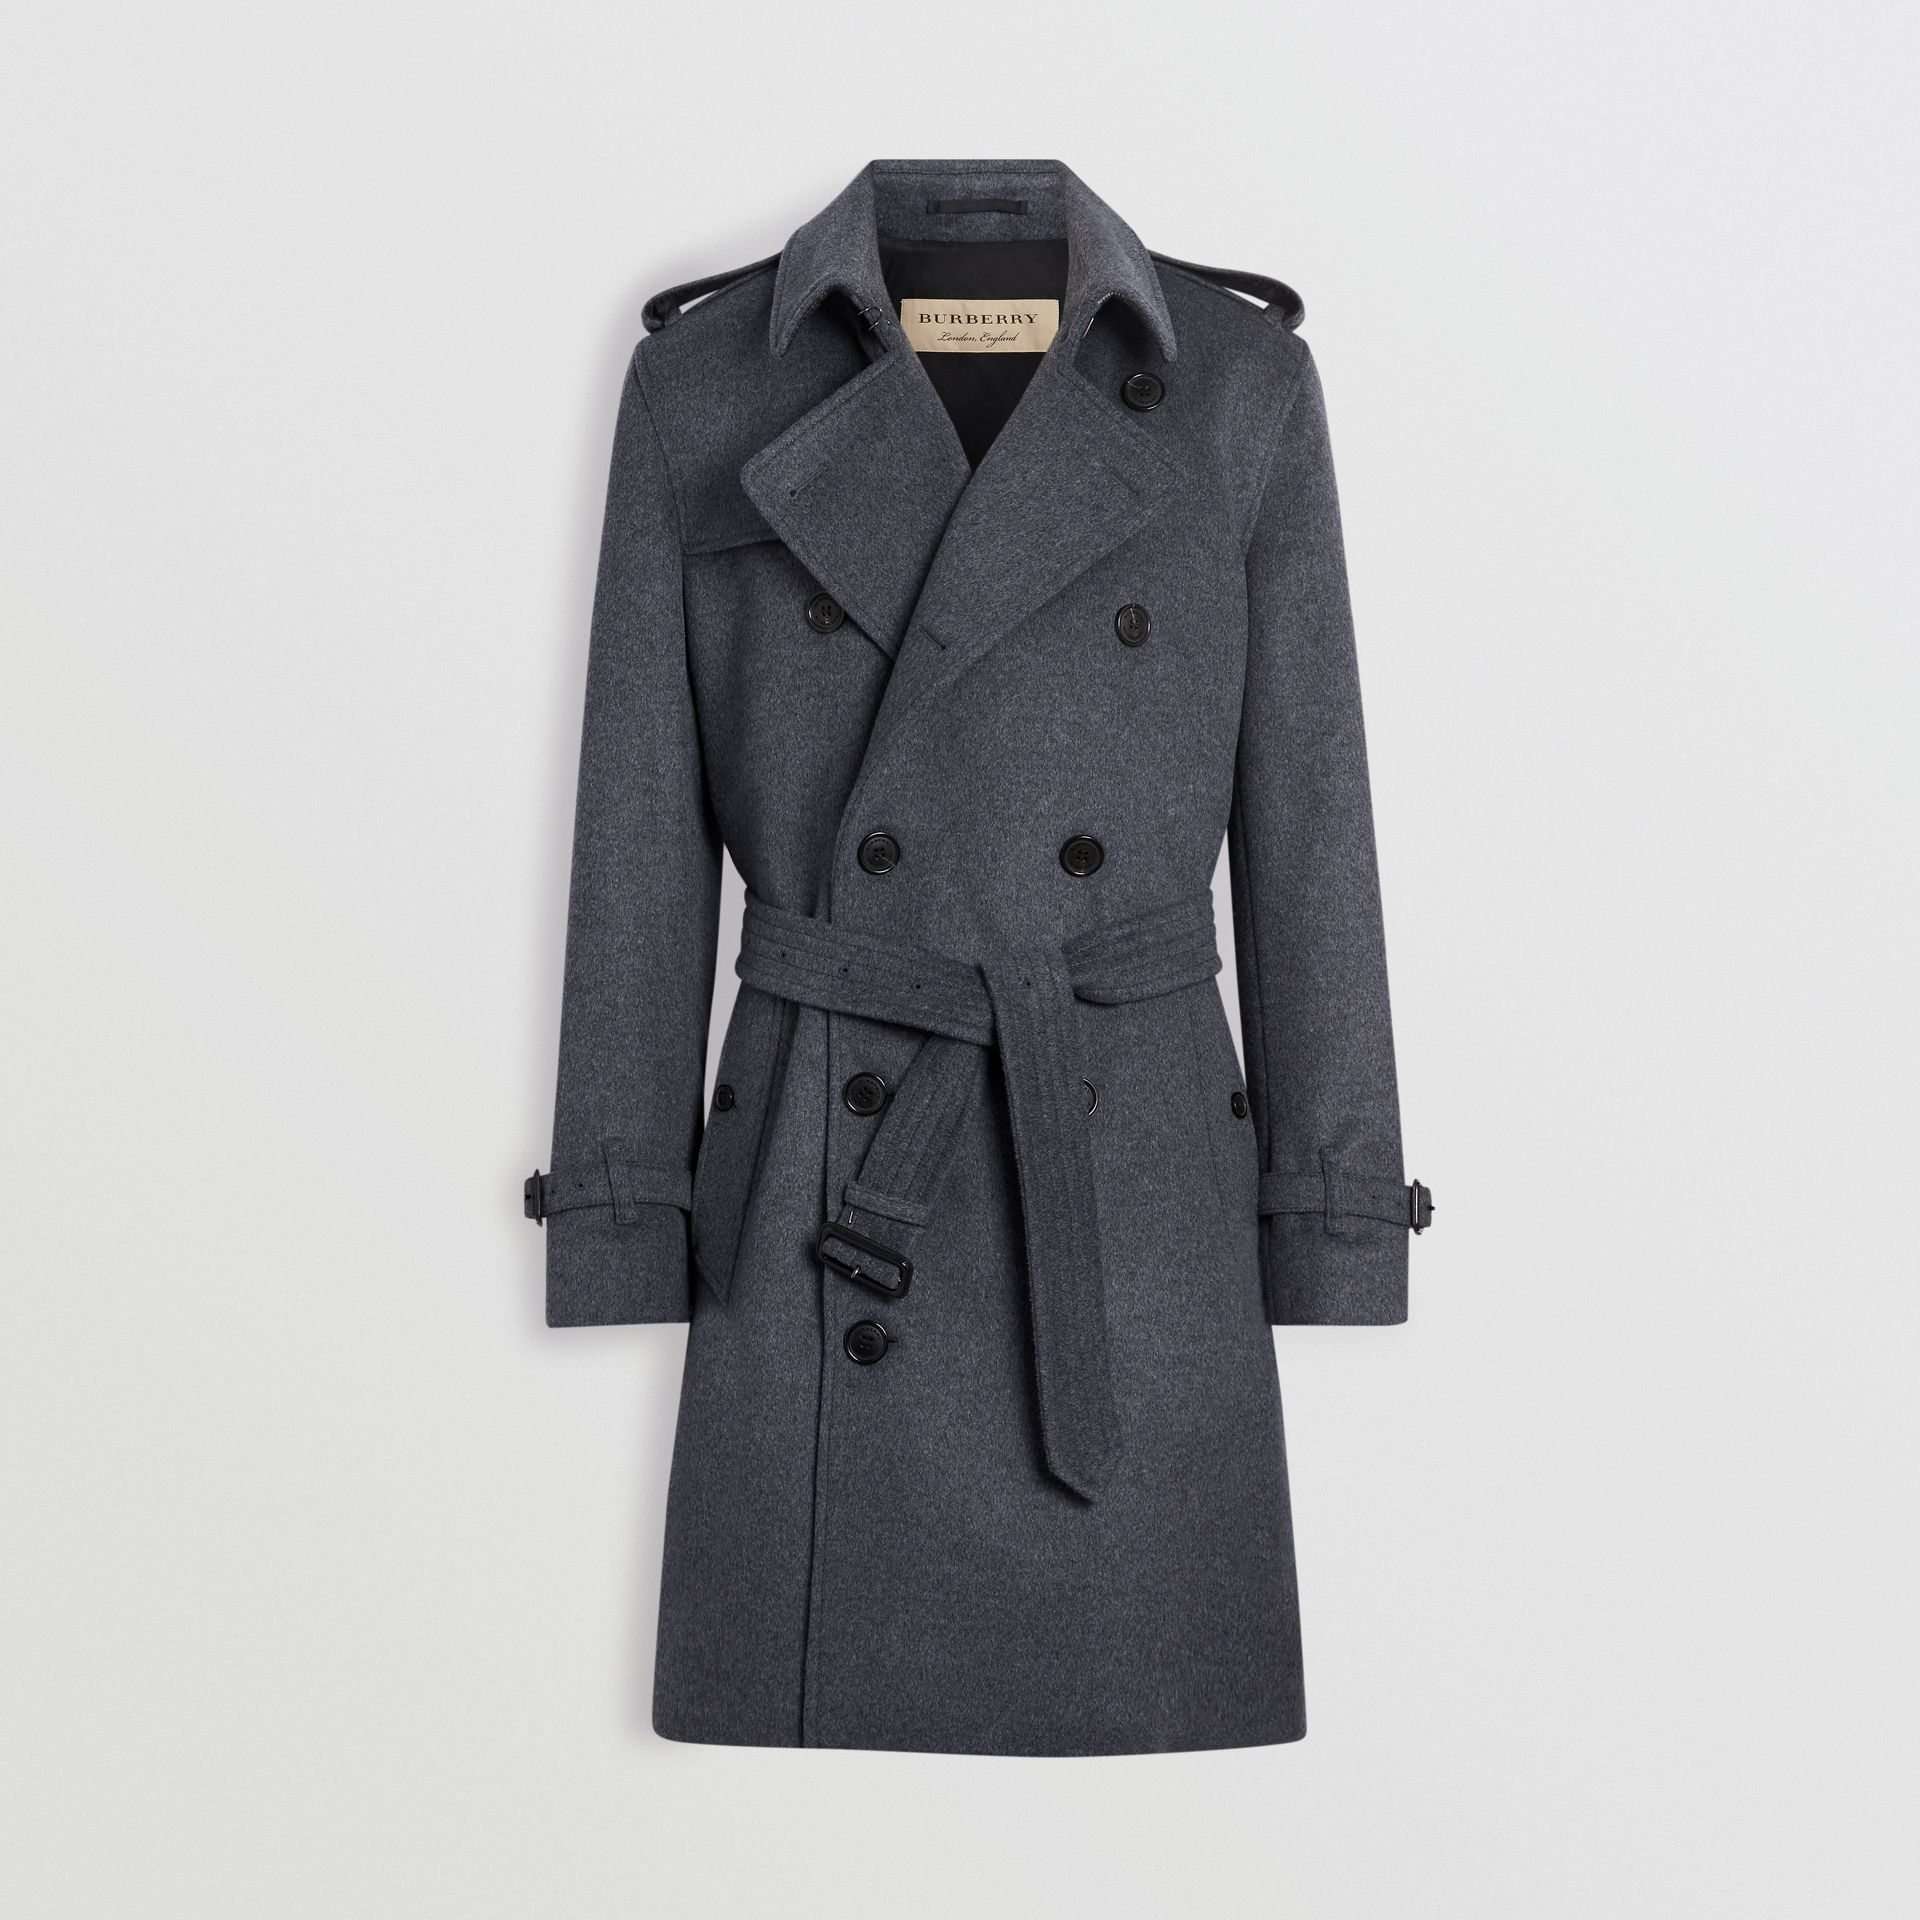 Wool Cashmere Trench Coat in Pewter Melange - Men | Burberry United States - gallery image 3